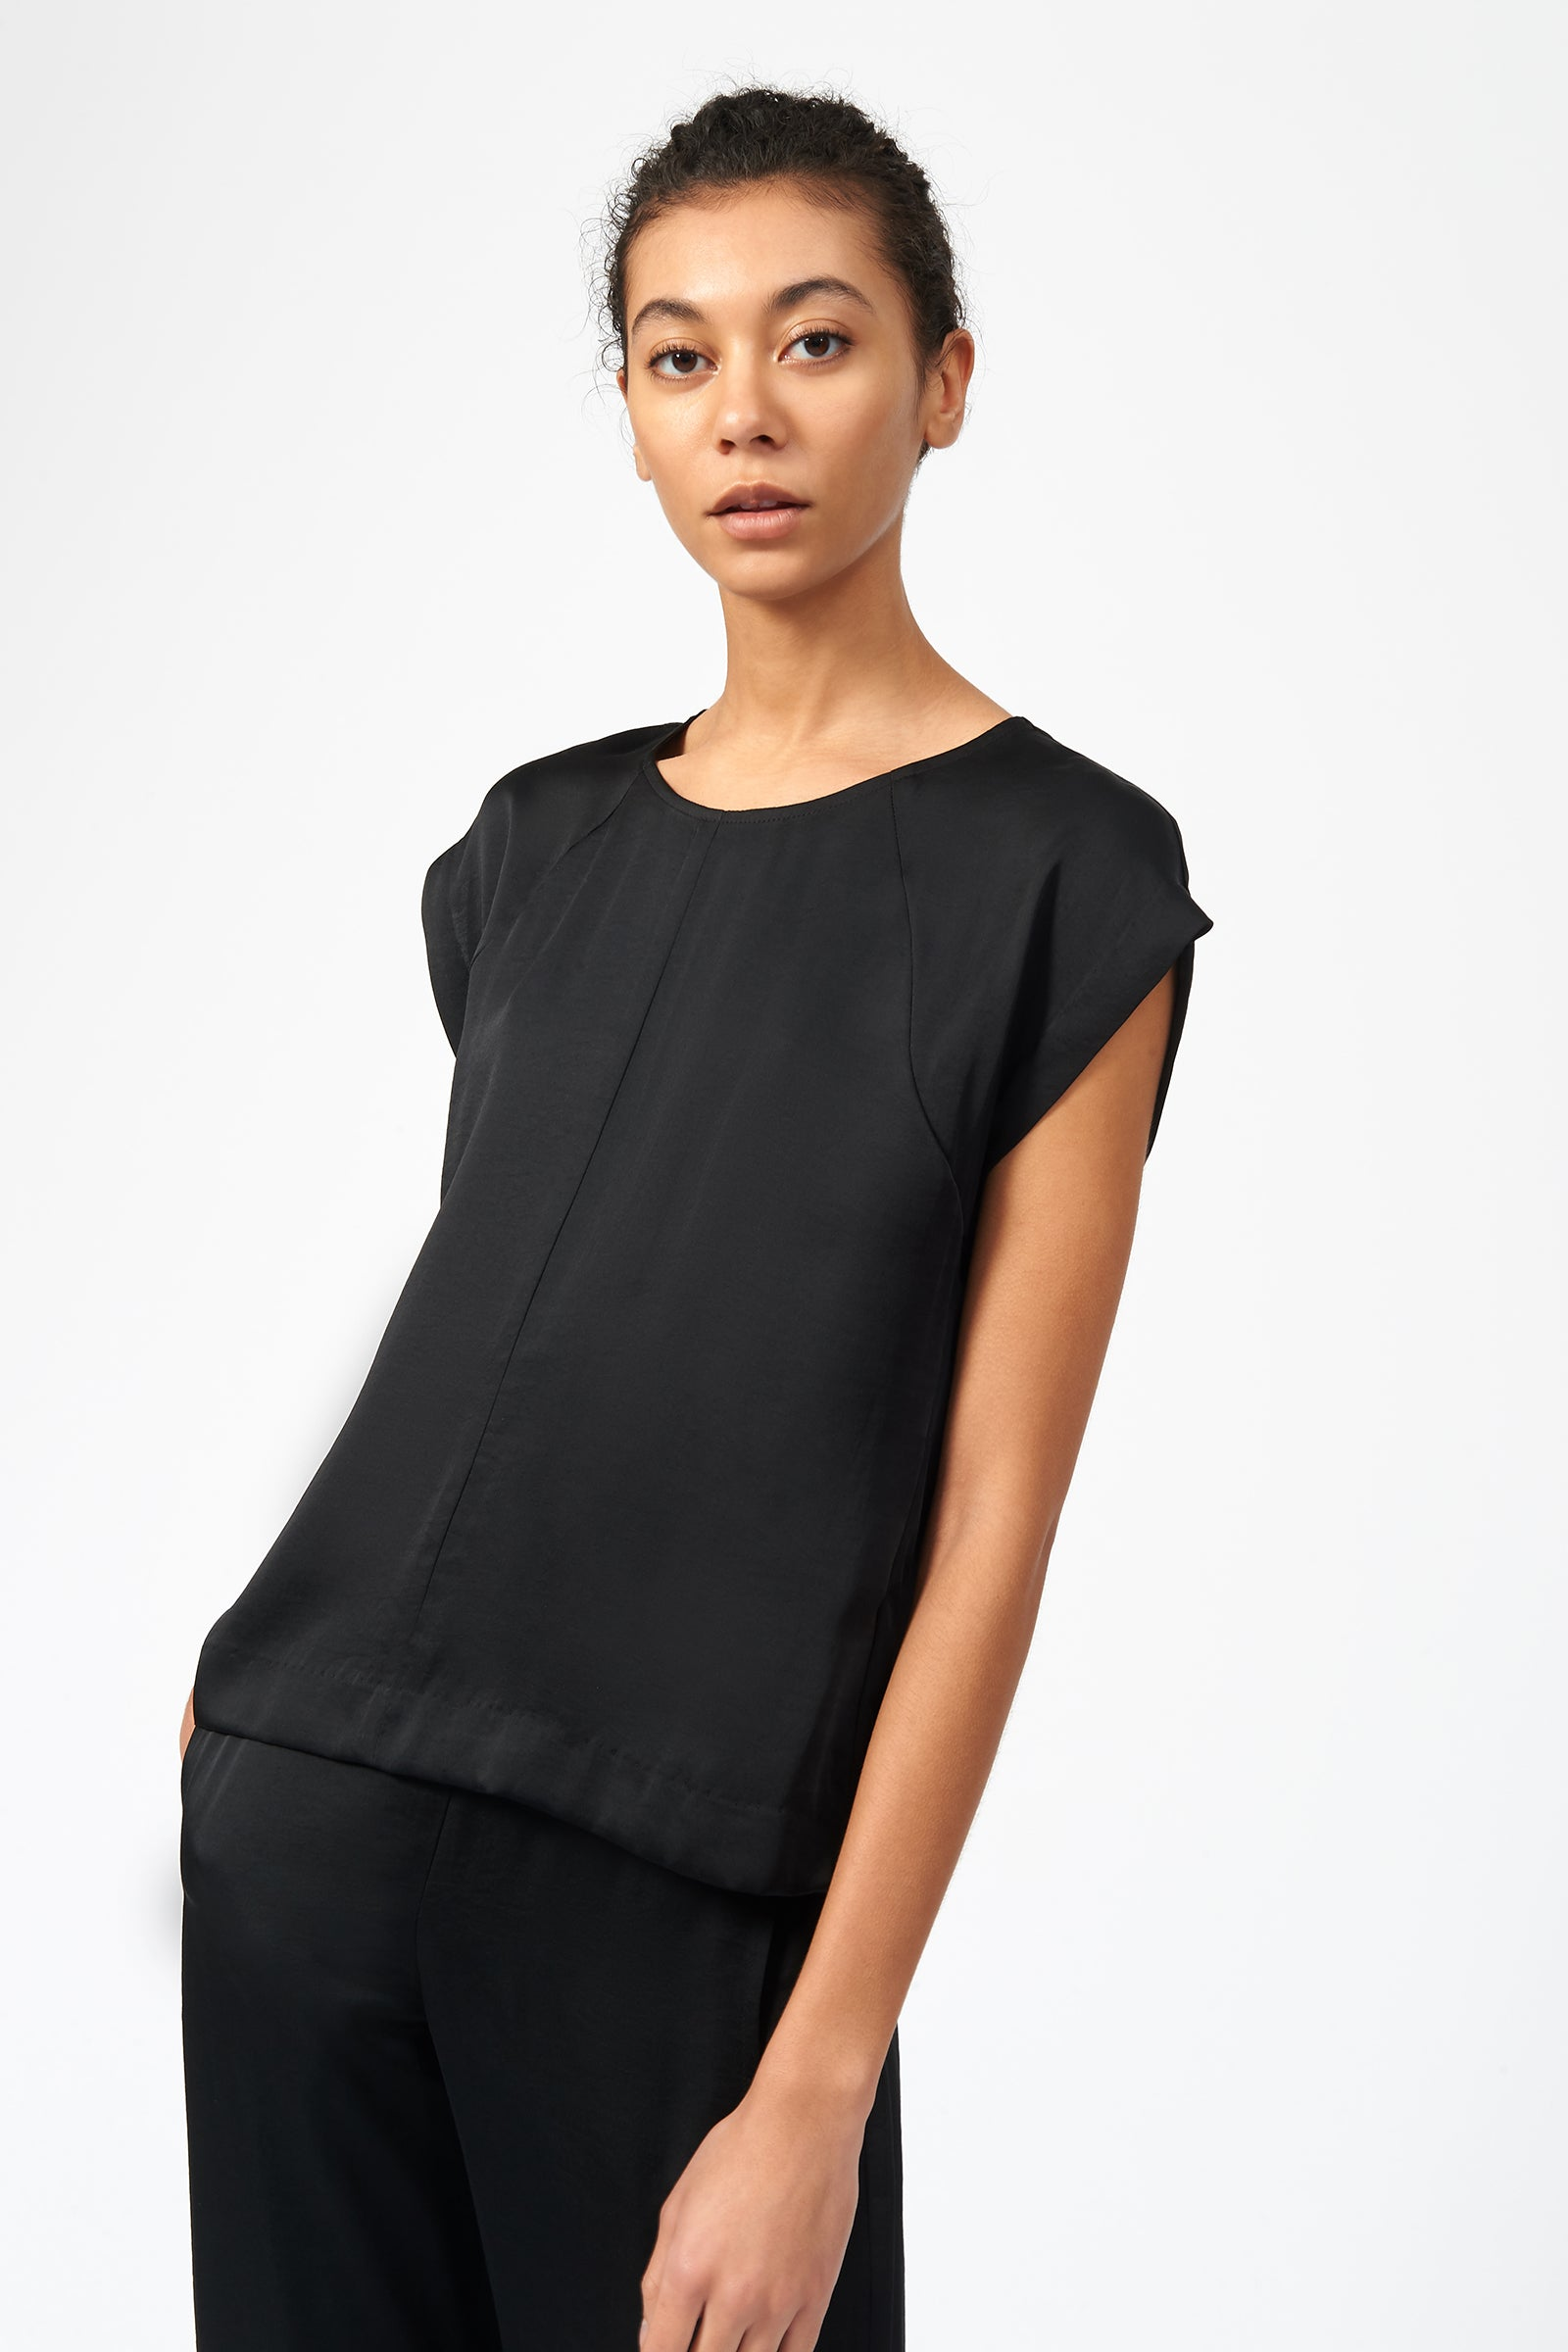 Kal Rieman Satin Raglan Tee in Black on Model Front Side View